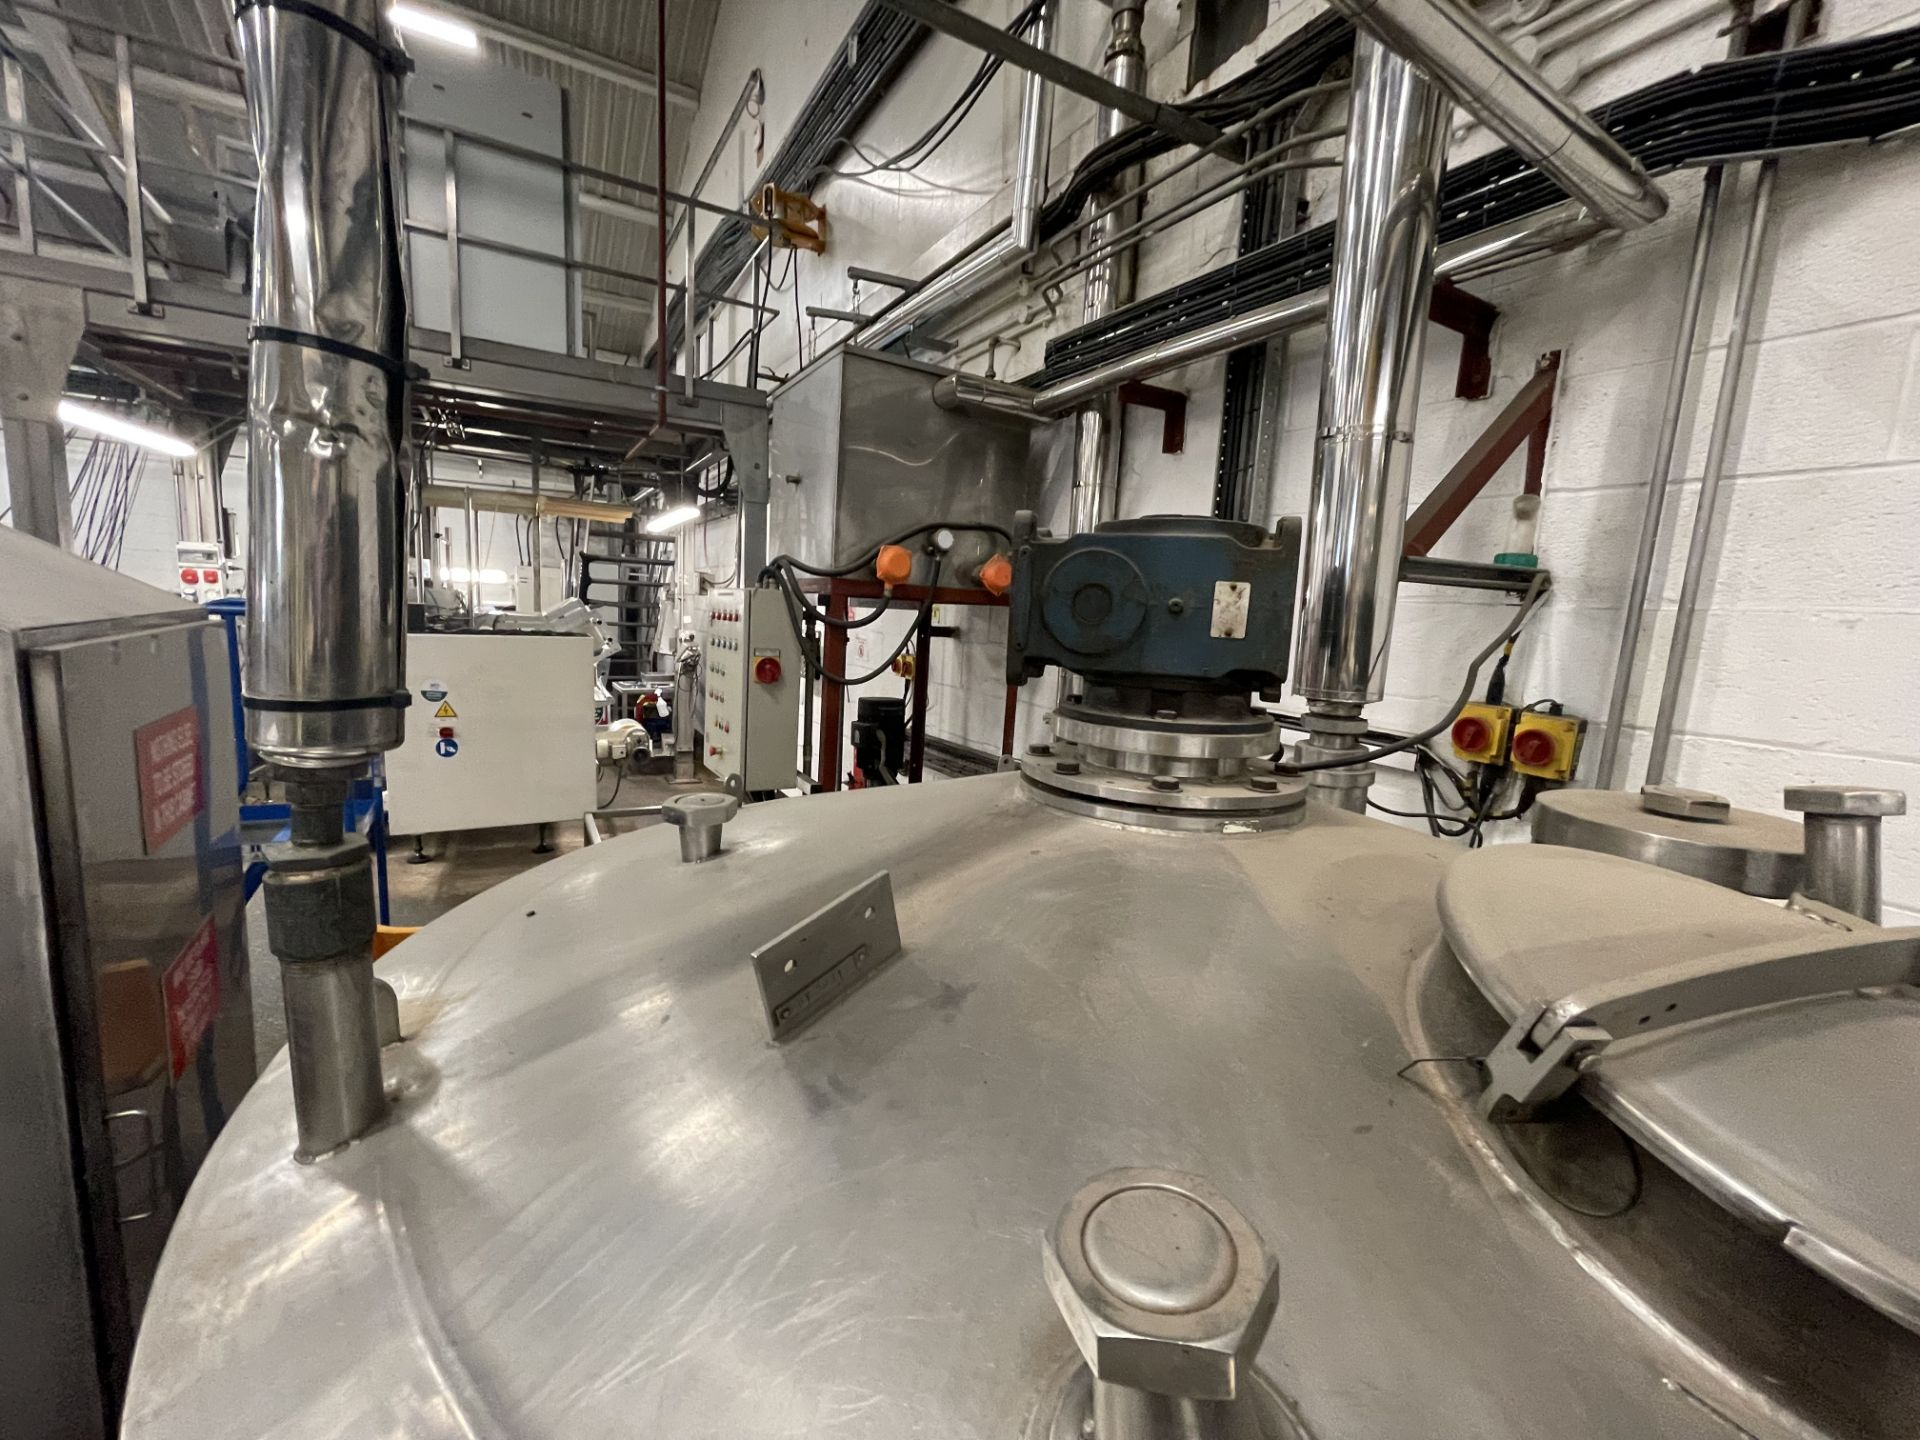 Pet Food Blending Line c/w Wynveen PM 750LH Stainless Steel Double Shaft Paddle Mixer - Image 52 of 63